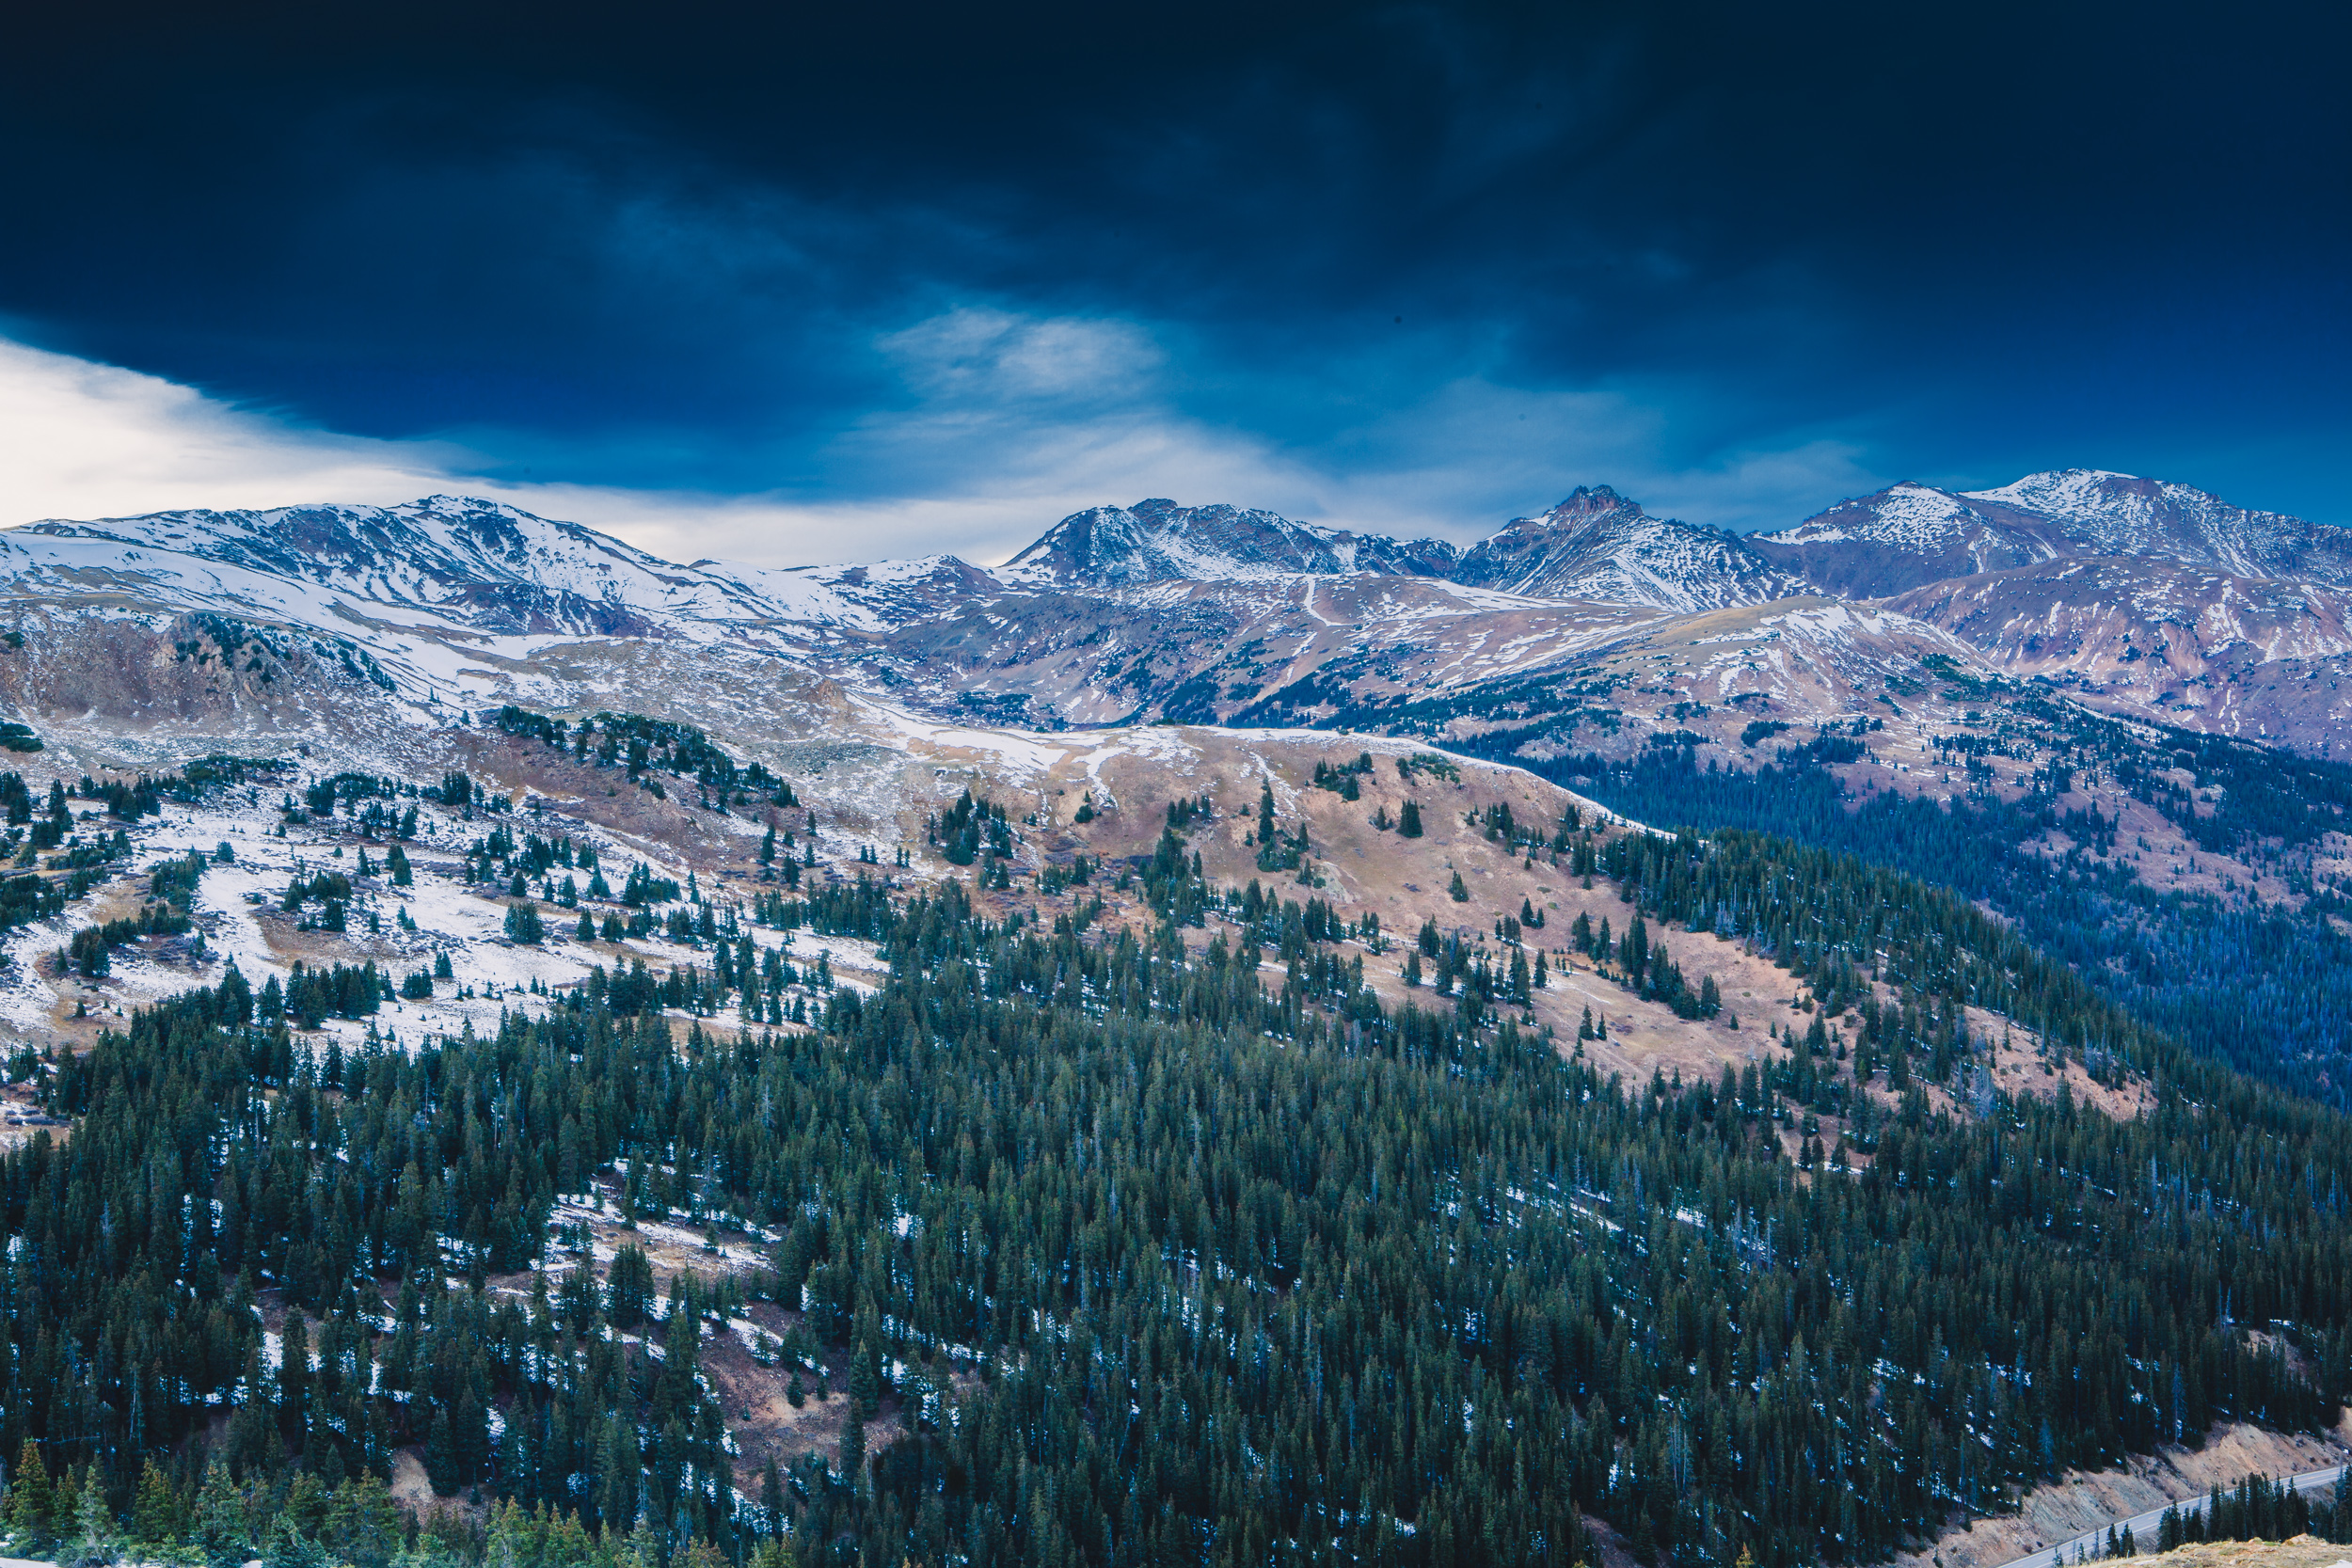 Loveland Pass Summit, Colorado